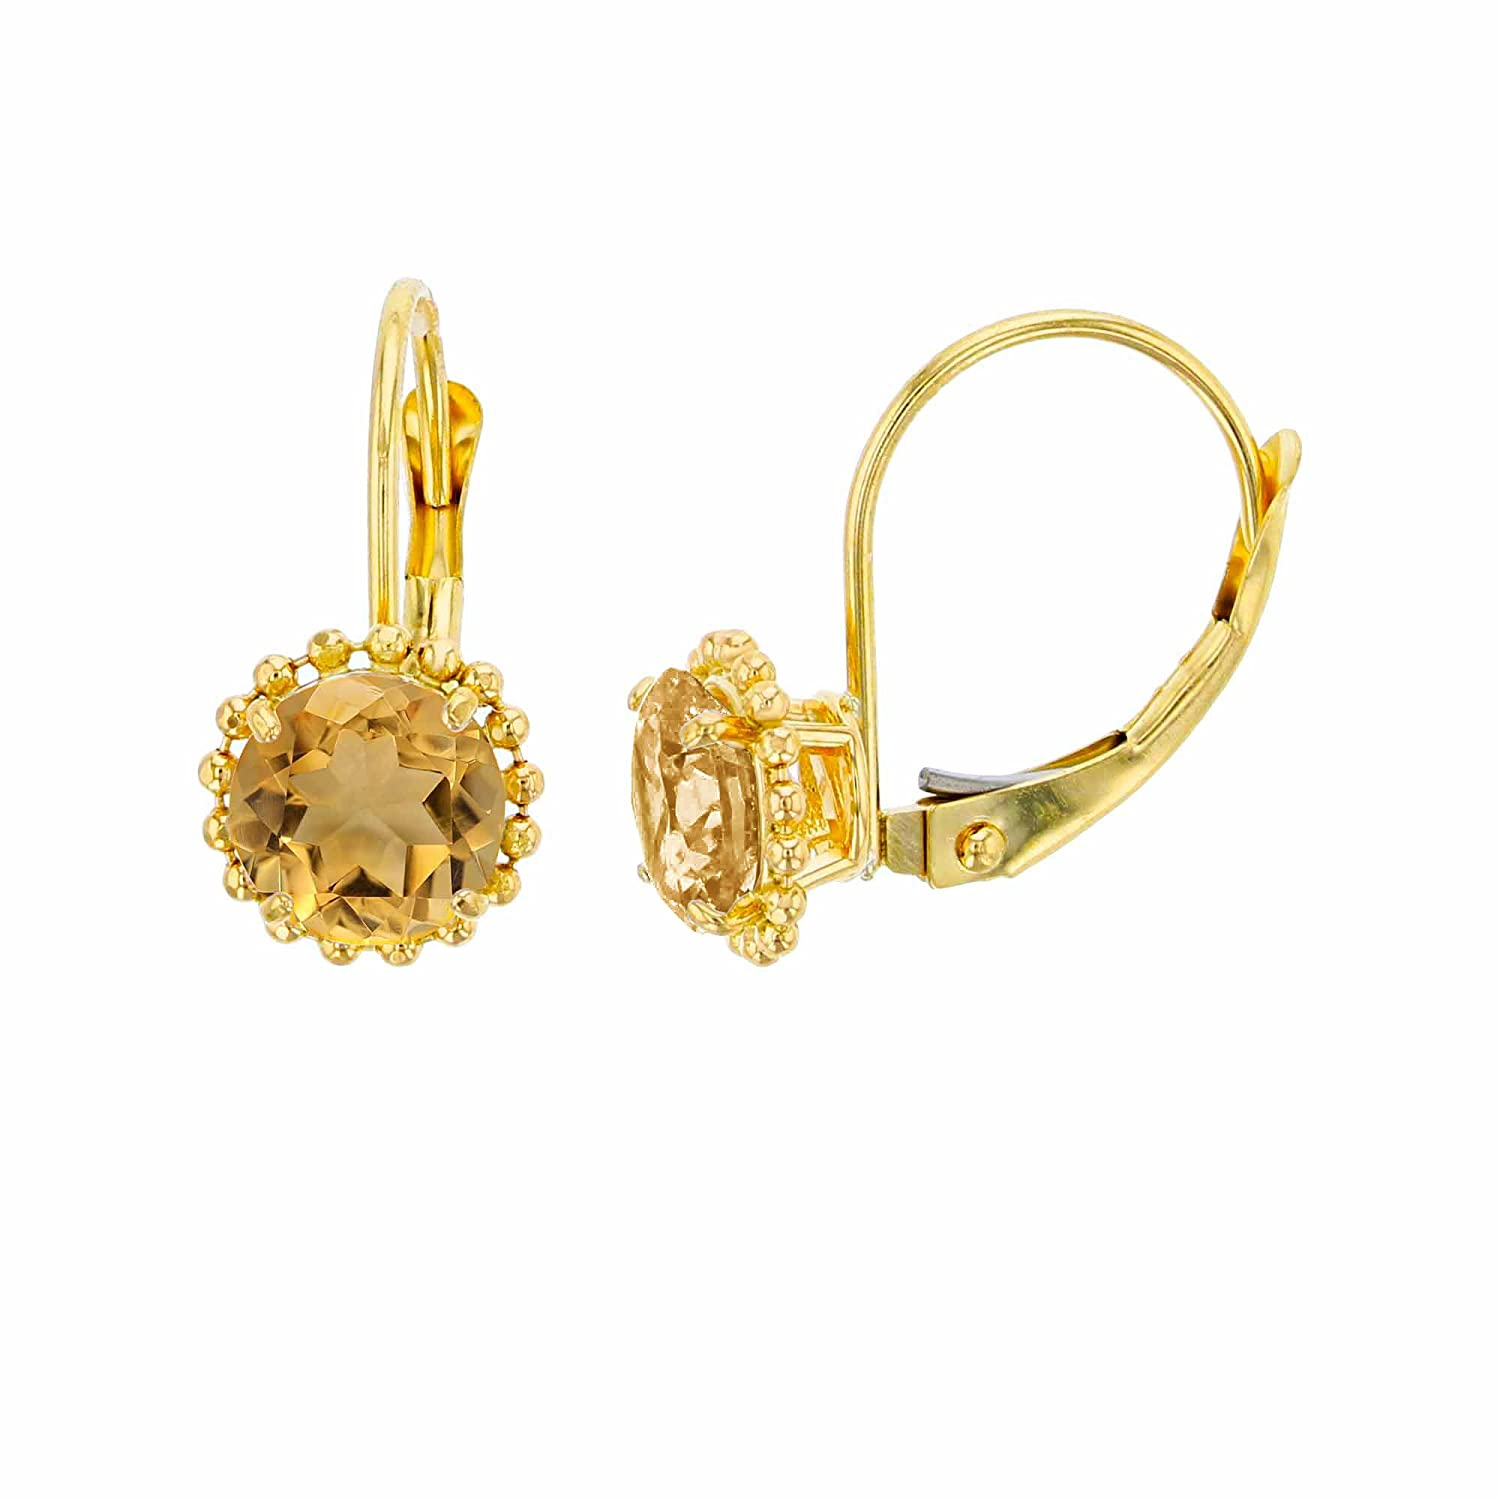 14K Yellow Gold 6mm Round Citrine Center Stone Bead Frame Leverback Earring